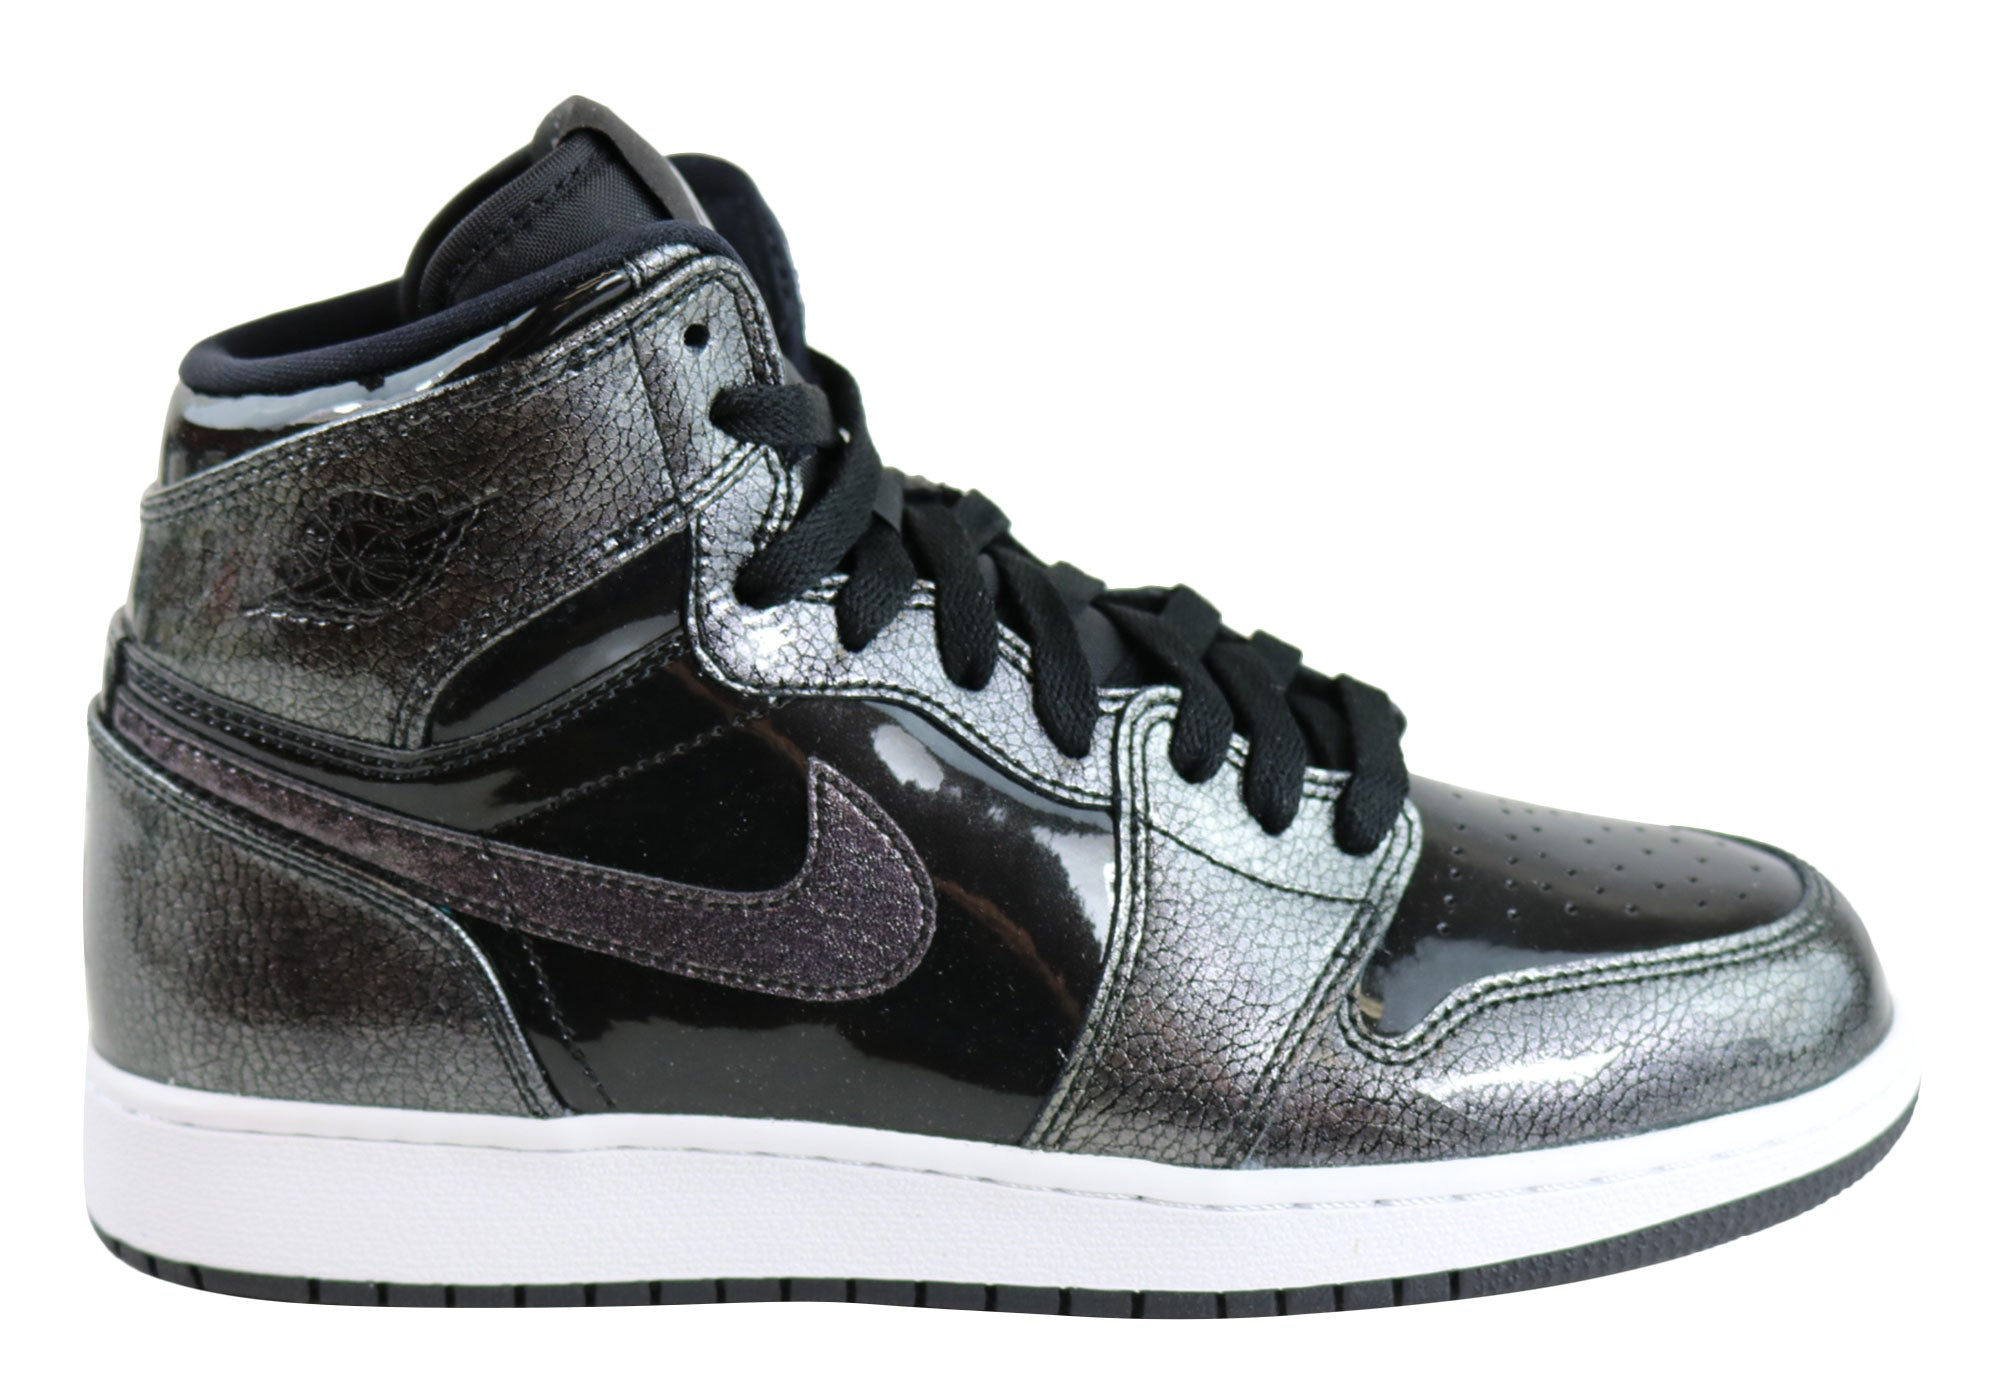 best service c4d1a 42501 Nike Older Boys Kids Air Jordan 1 Retro High BG | Brand ...